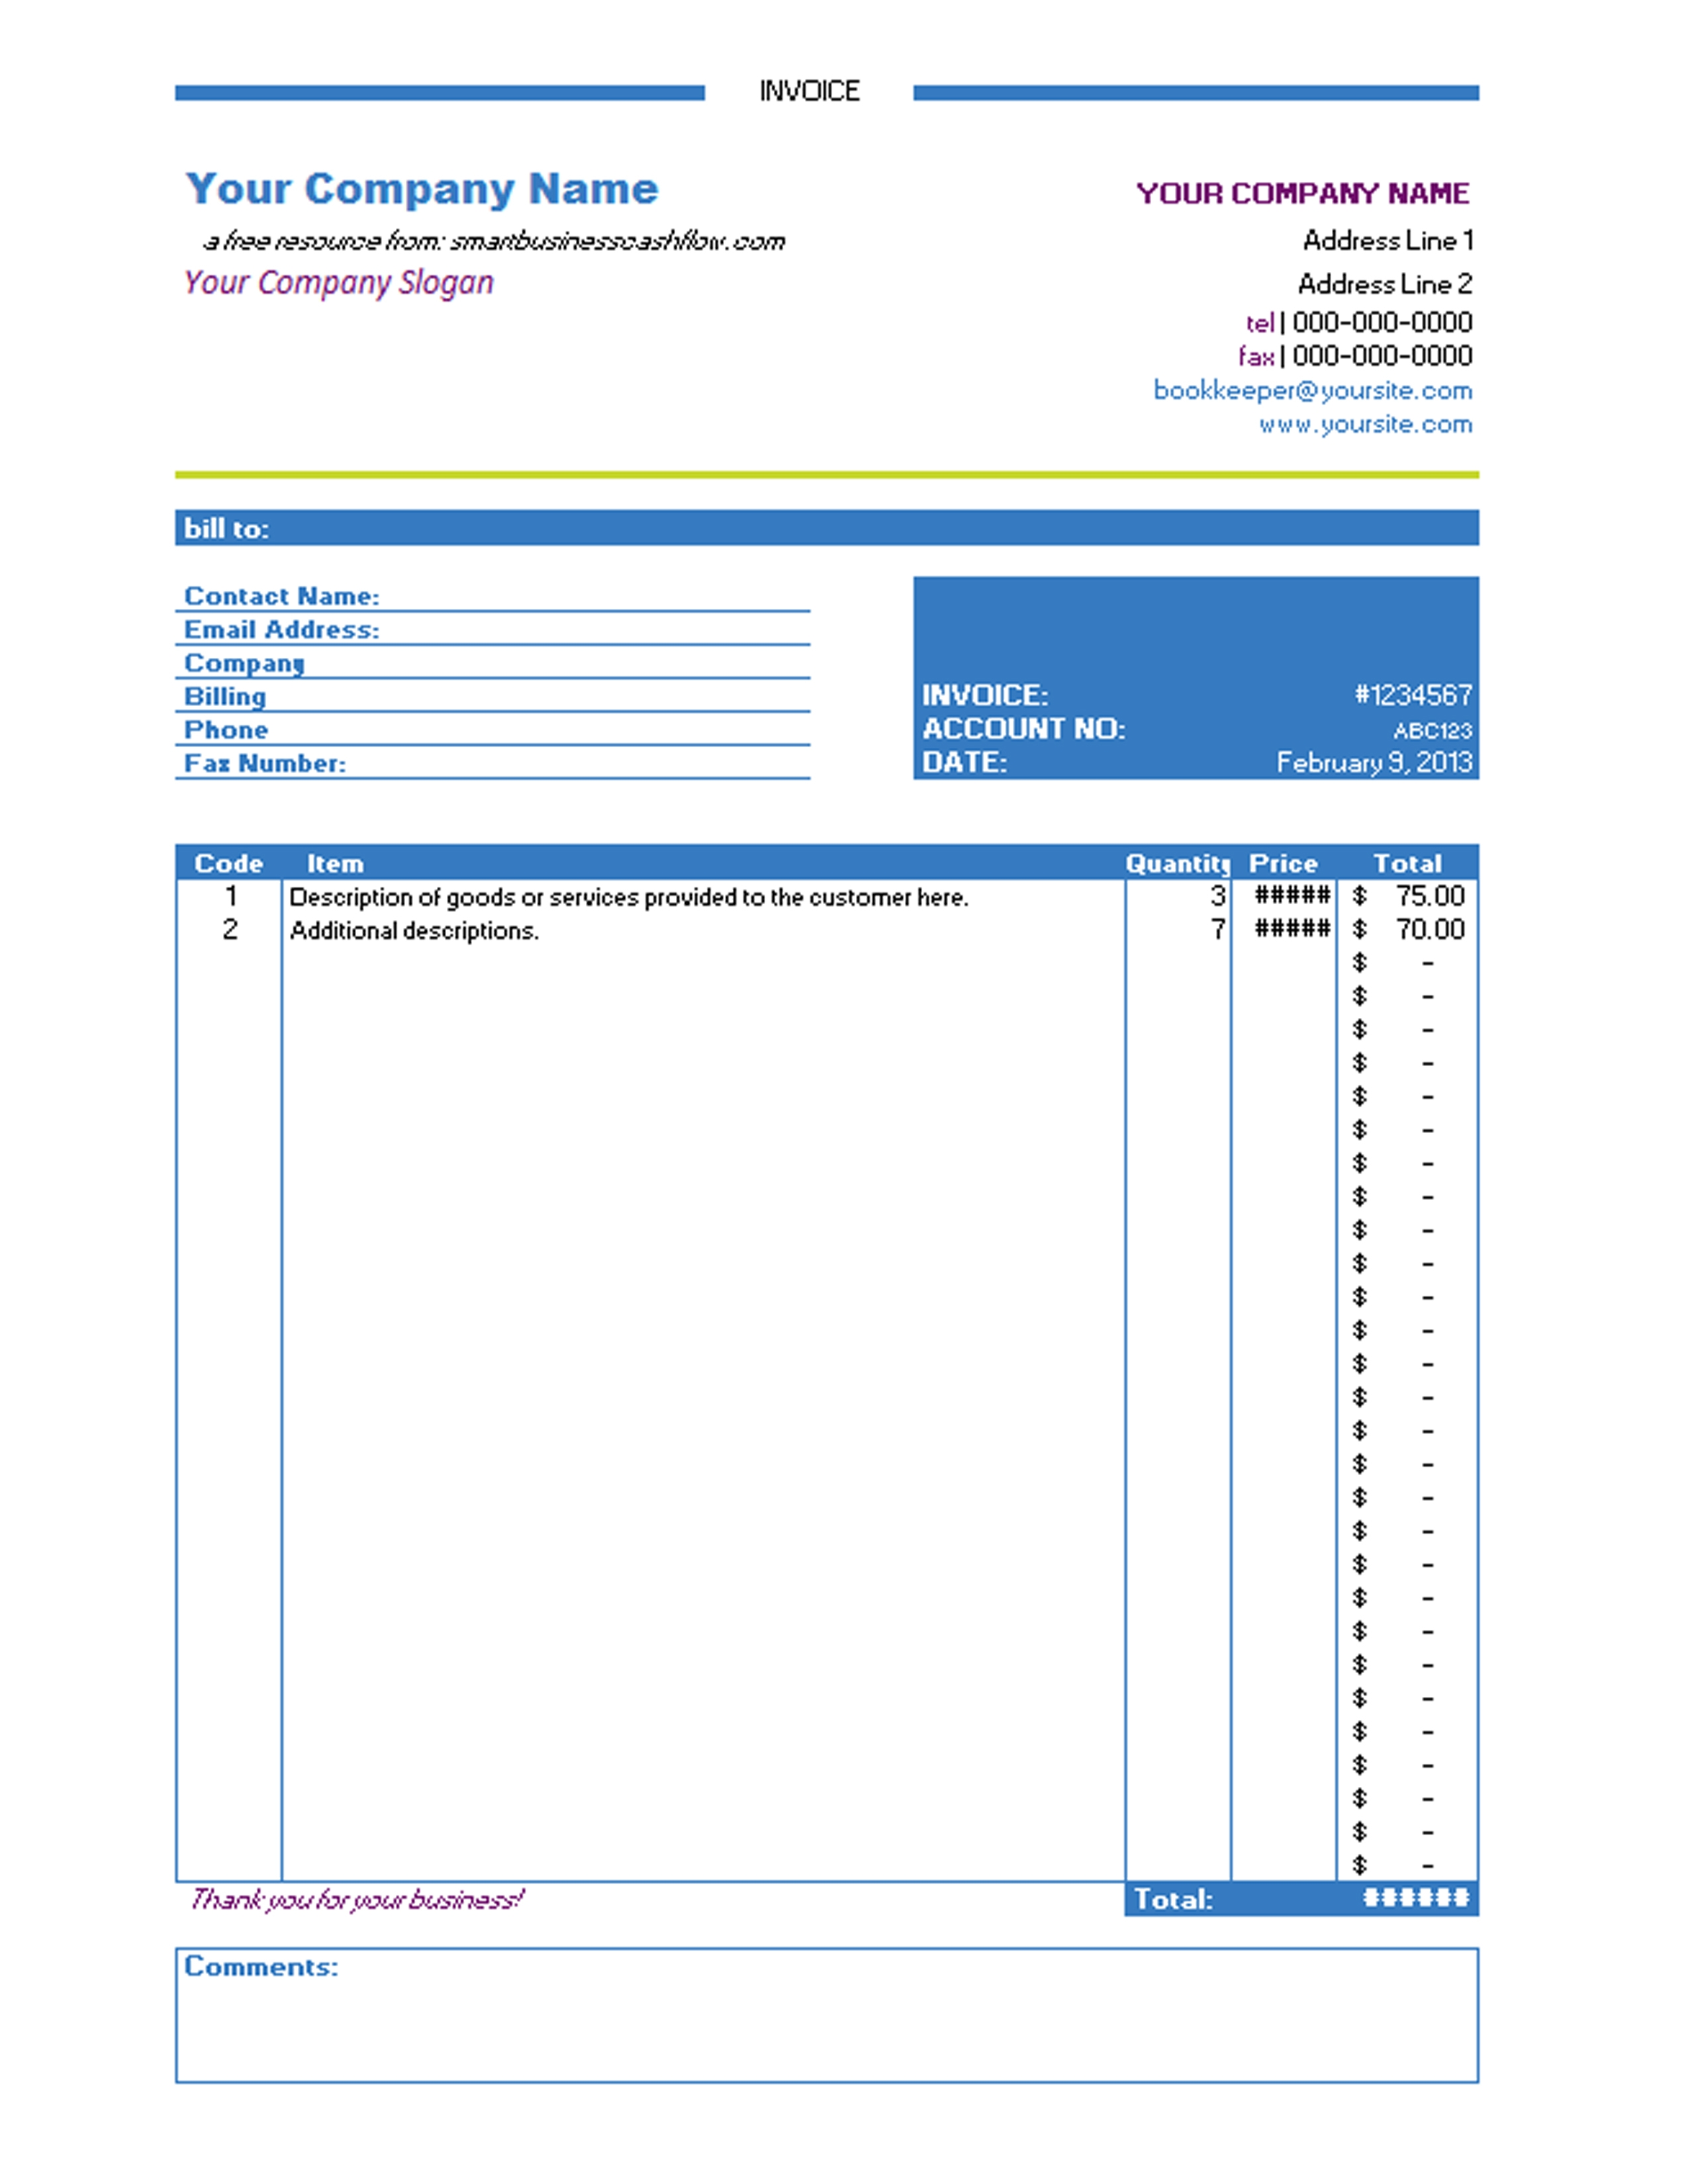 Invoice Template Uk Excel | invoice example